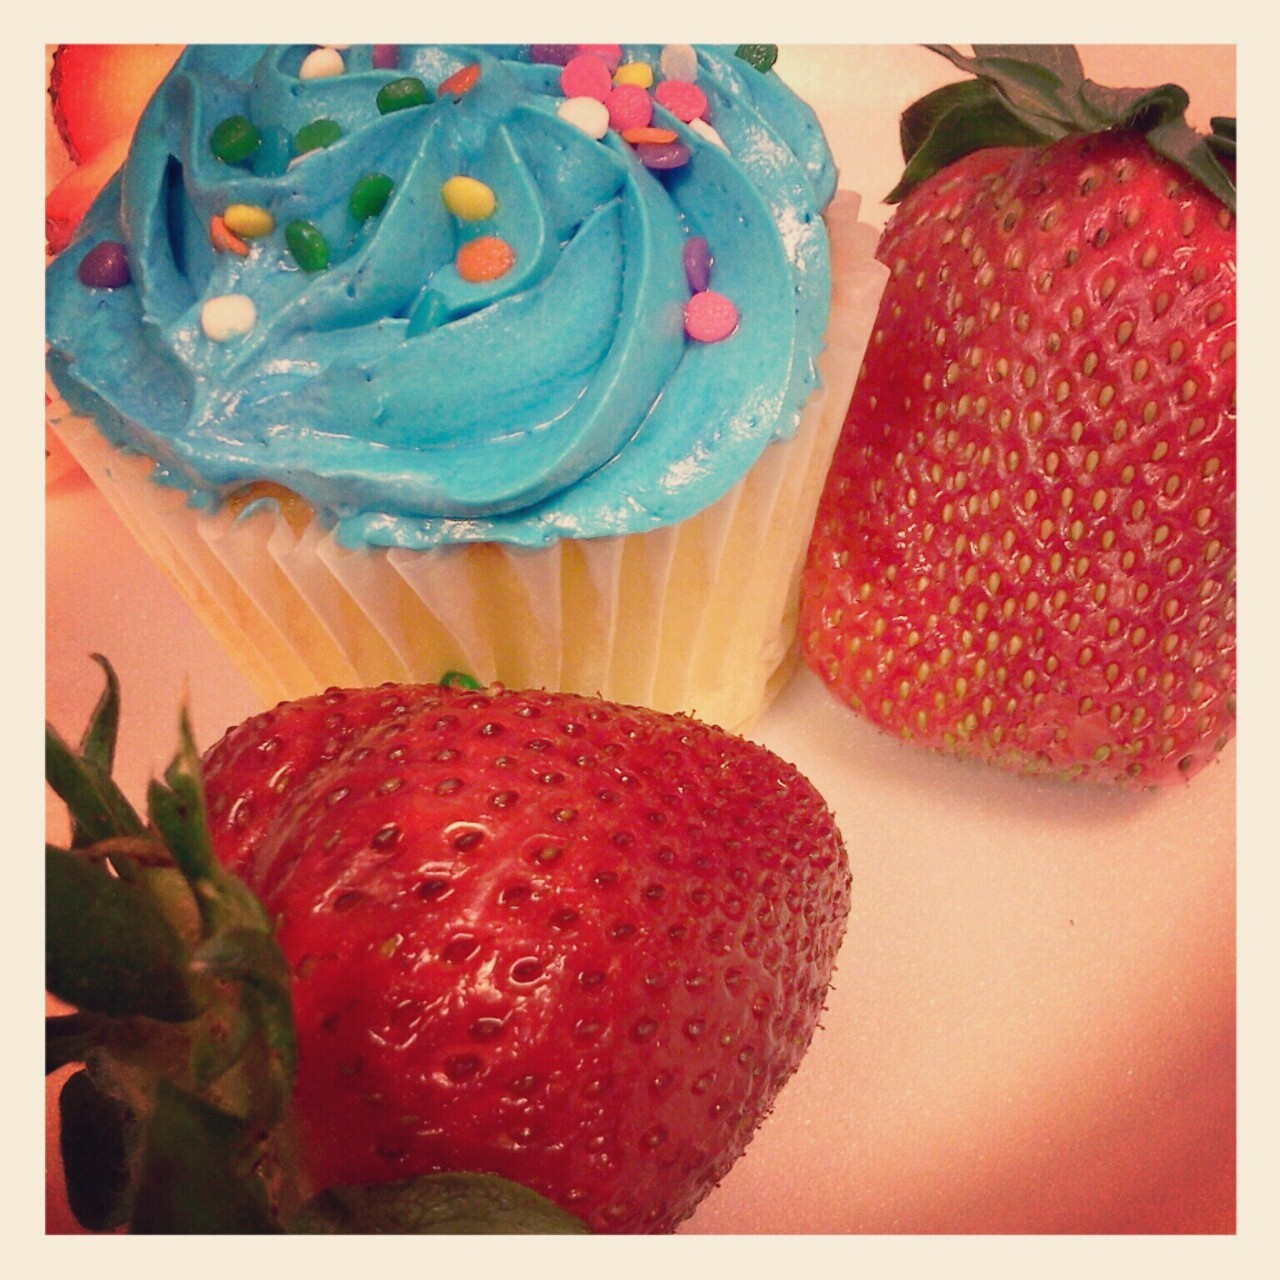 Cupcake and cupcake-sized strawberries. Receptionist's birthday today. ^_^